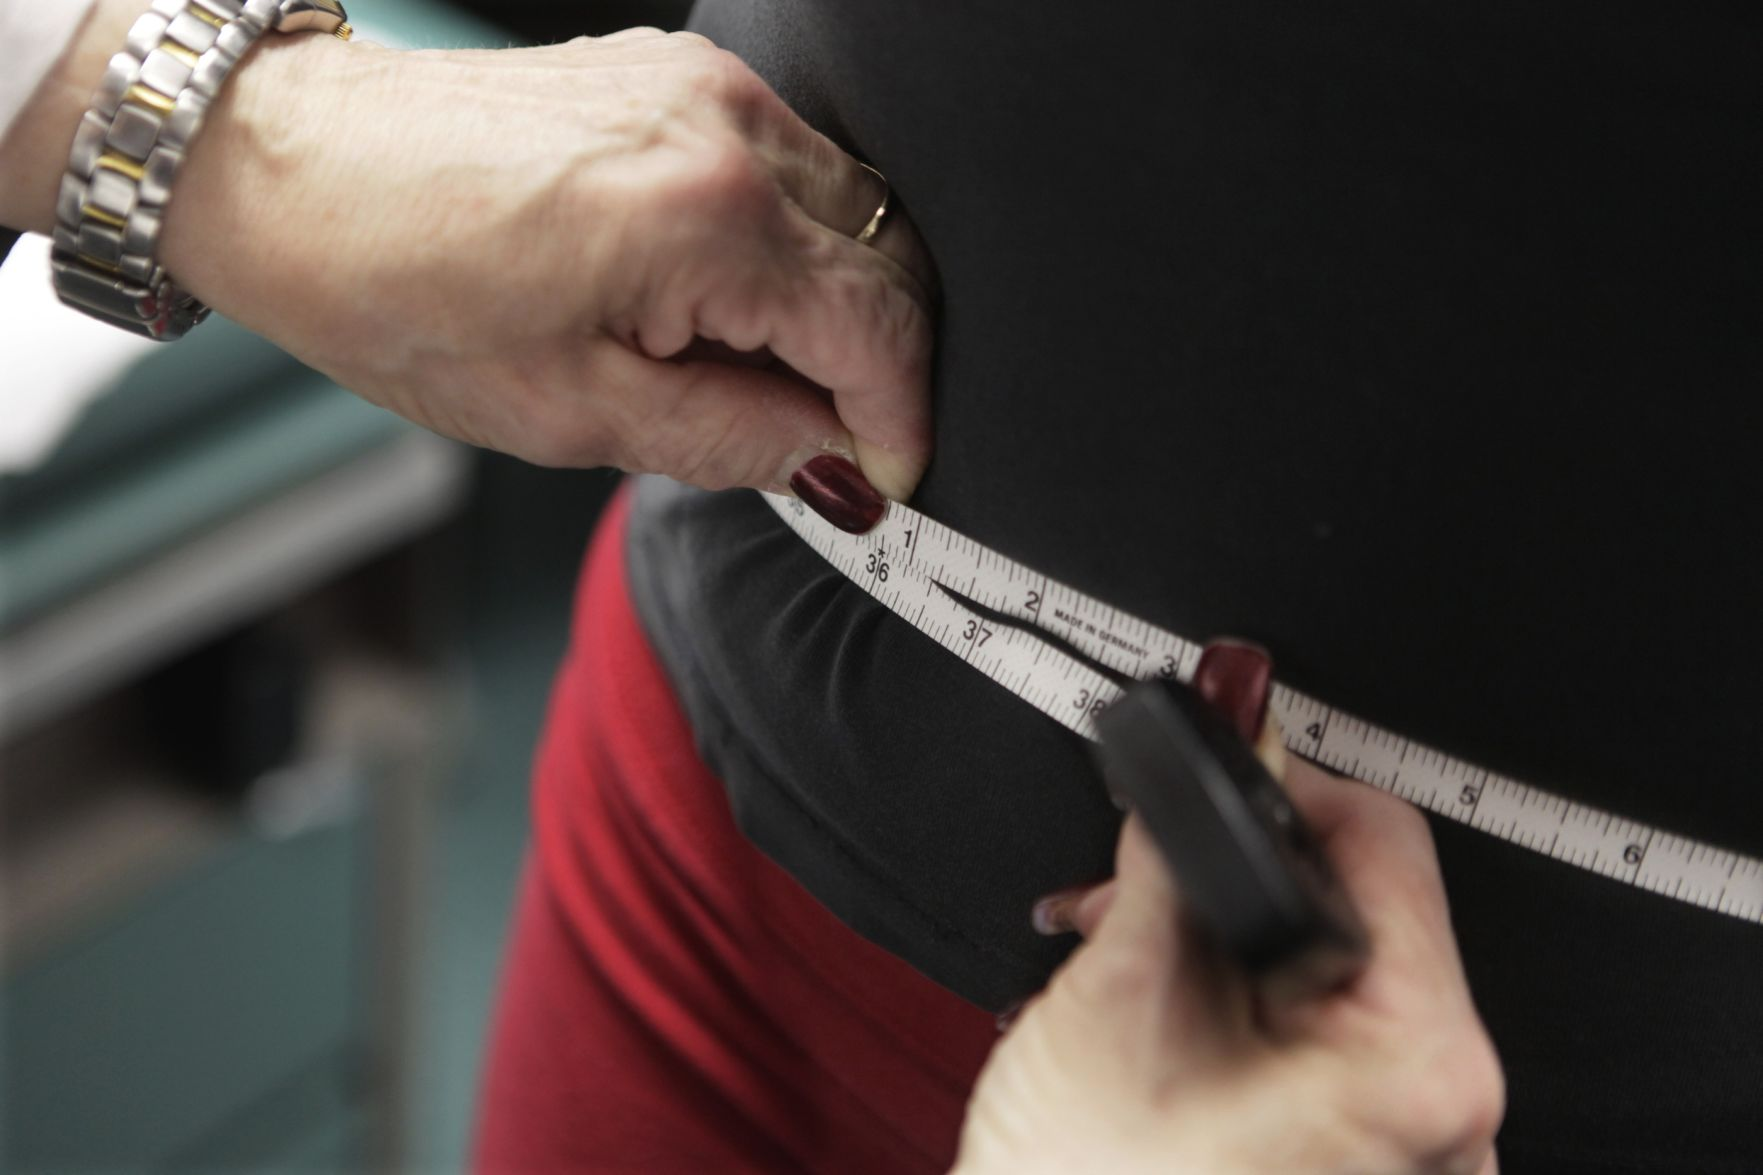 RI Boasts One Of The Lowest Obesity Rates In The Country